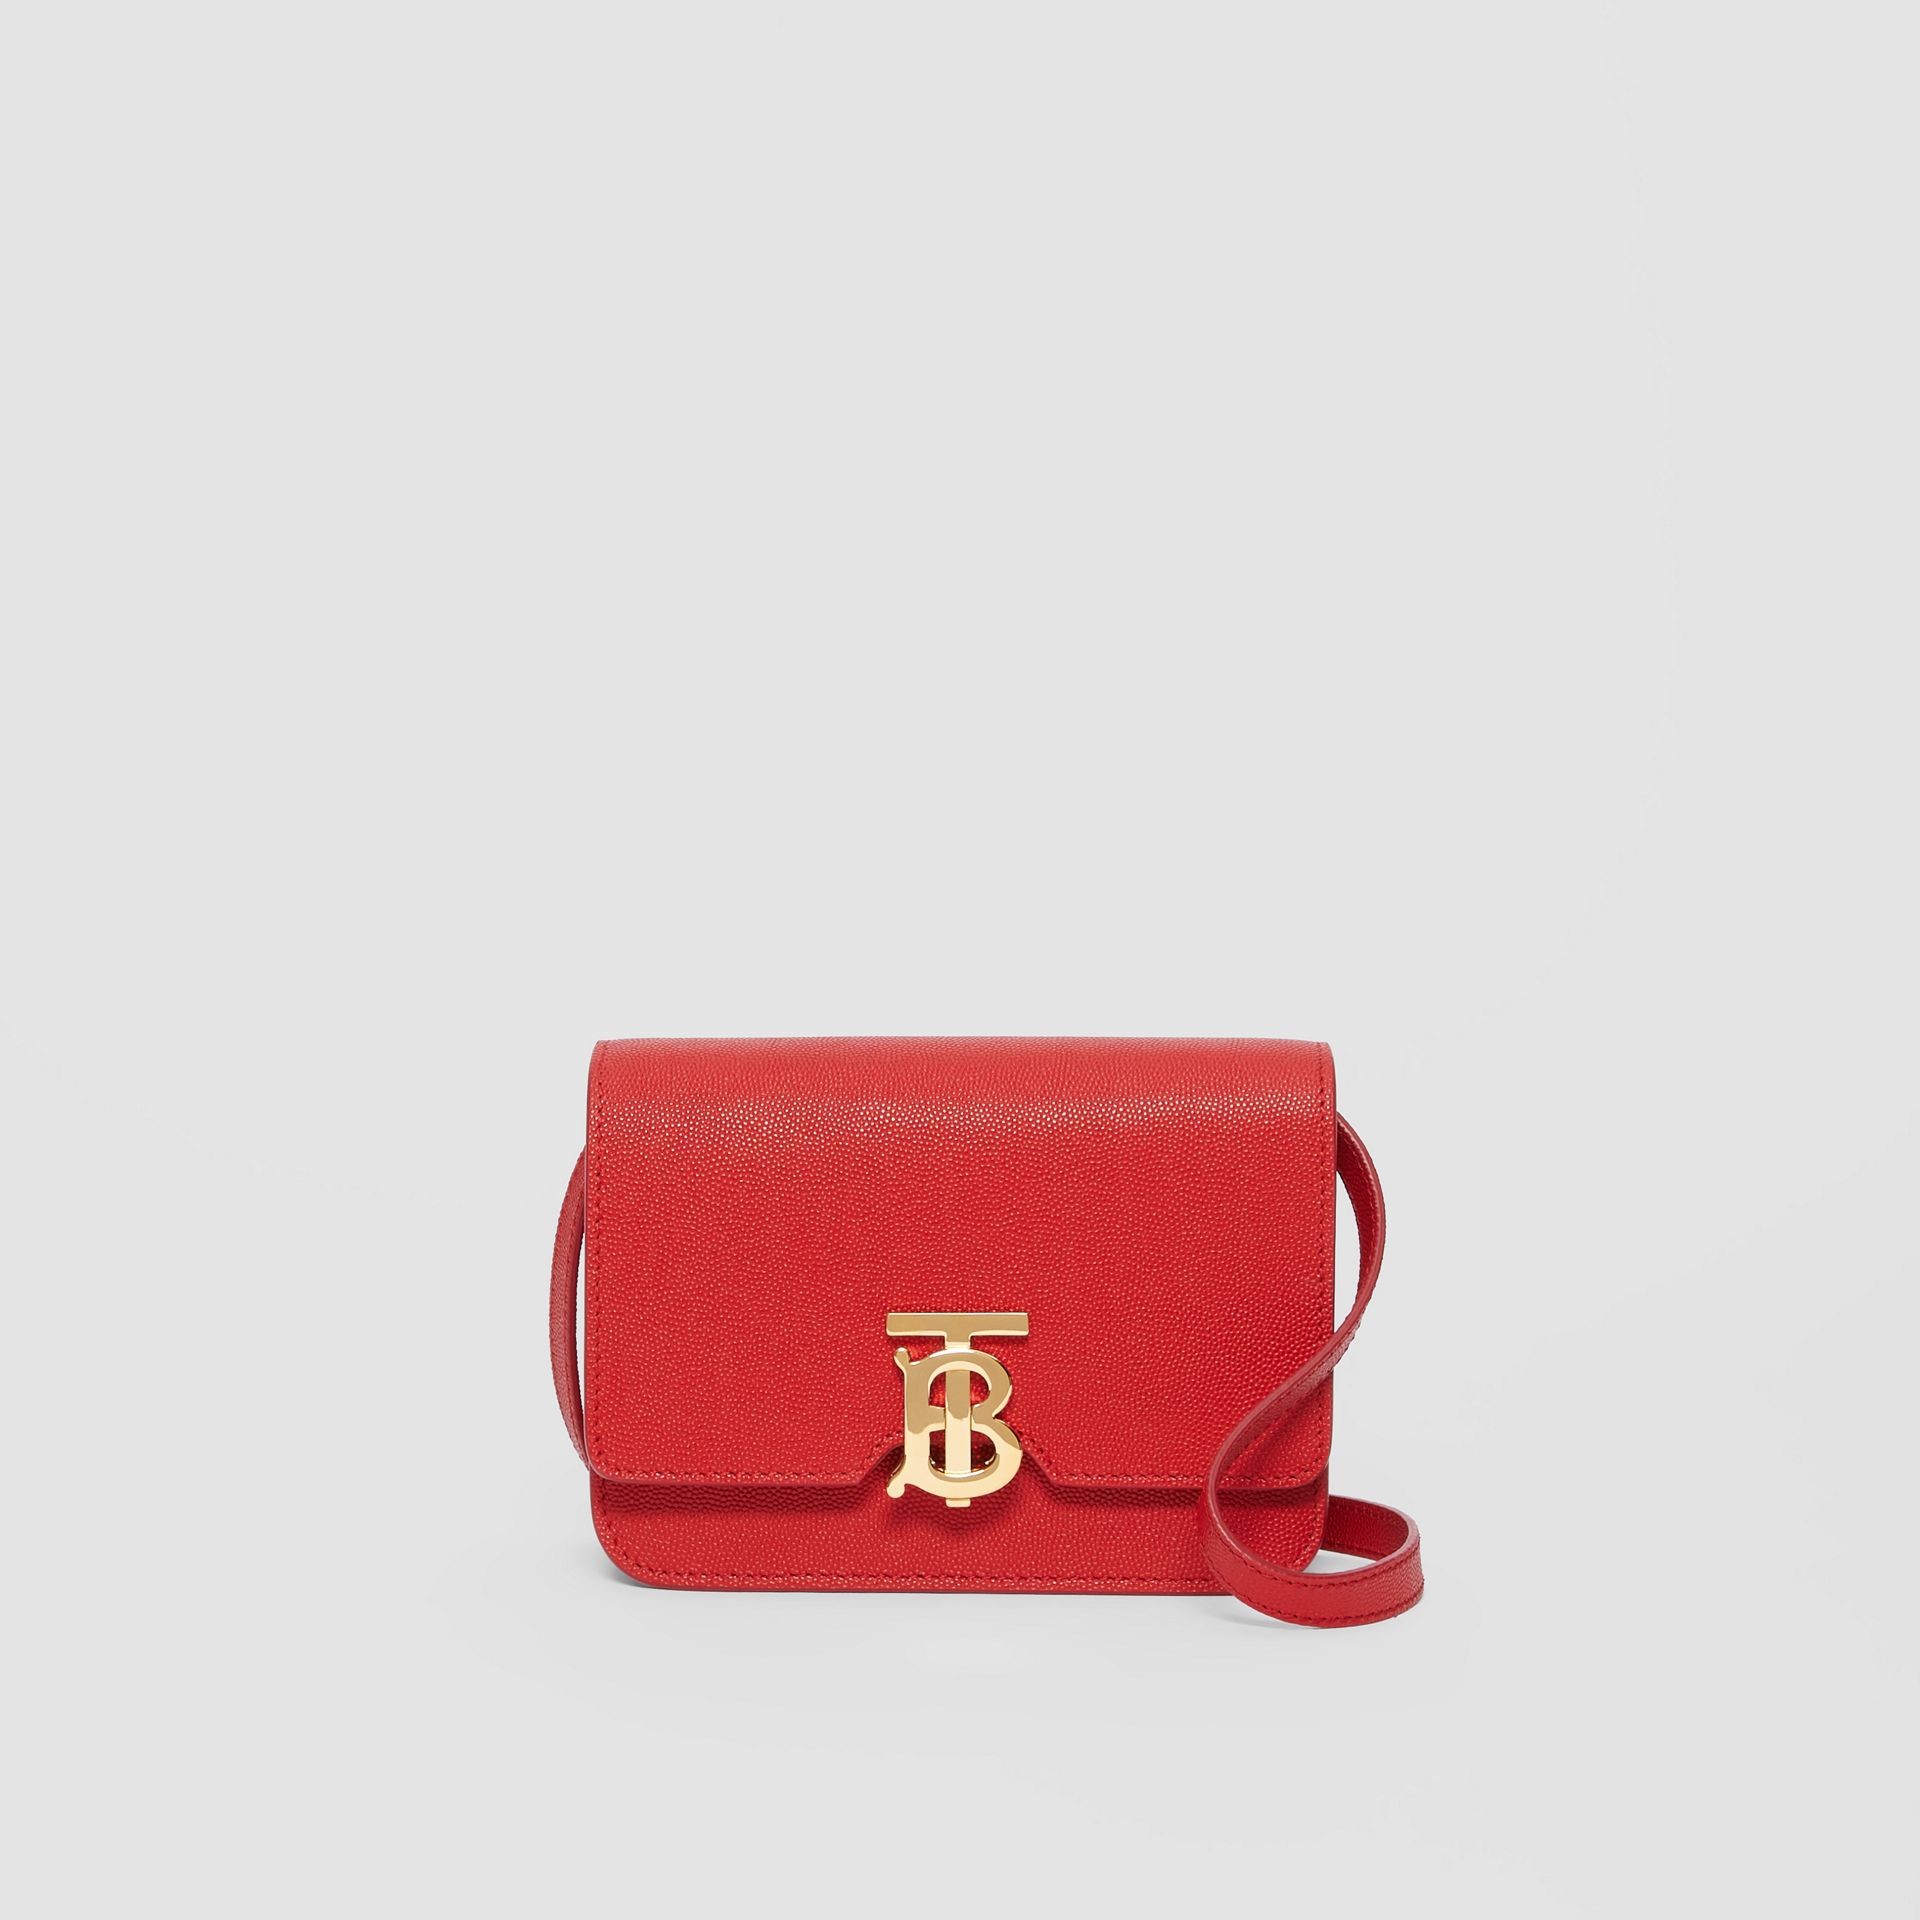 Mini Grainy Leather TB Bag in Bright Red - Women | Burberry United States - gallery image 0